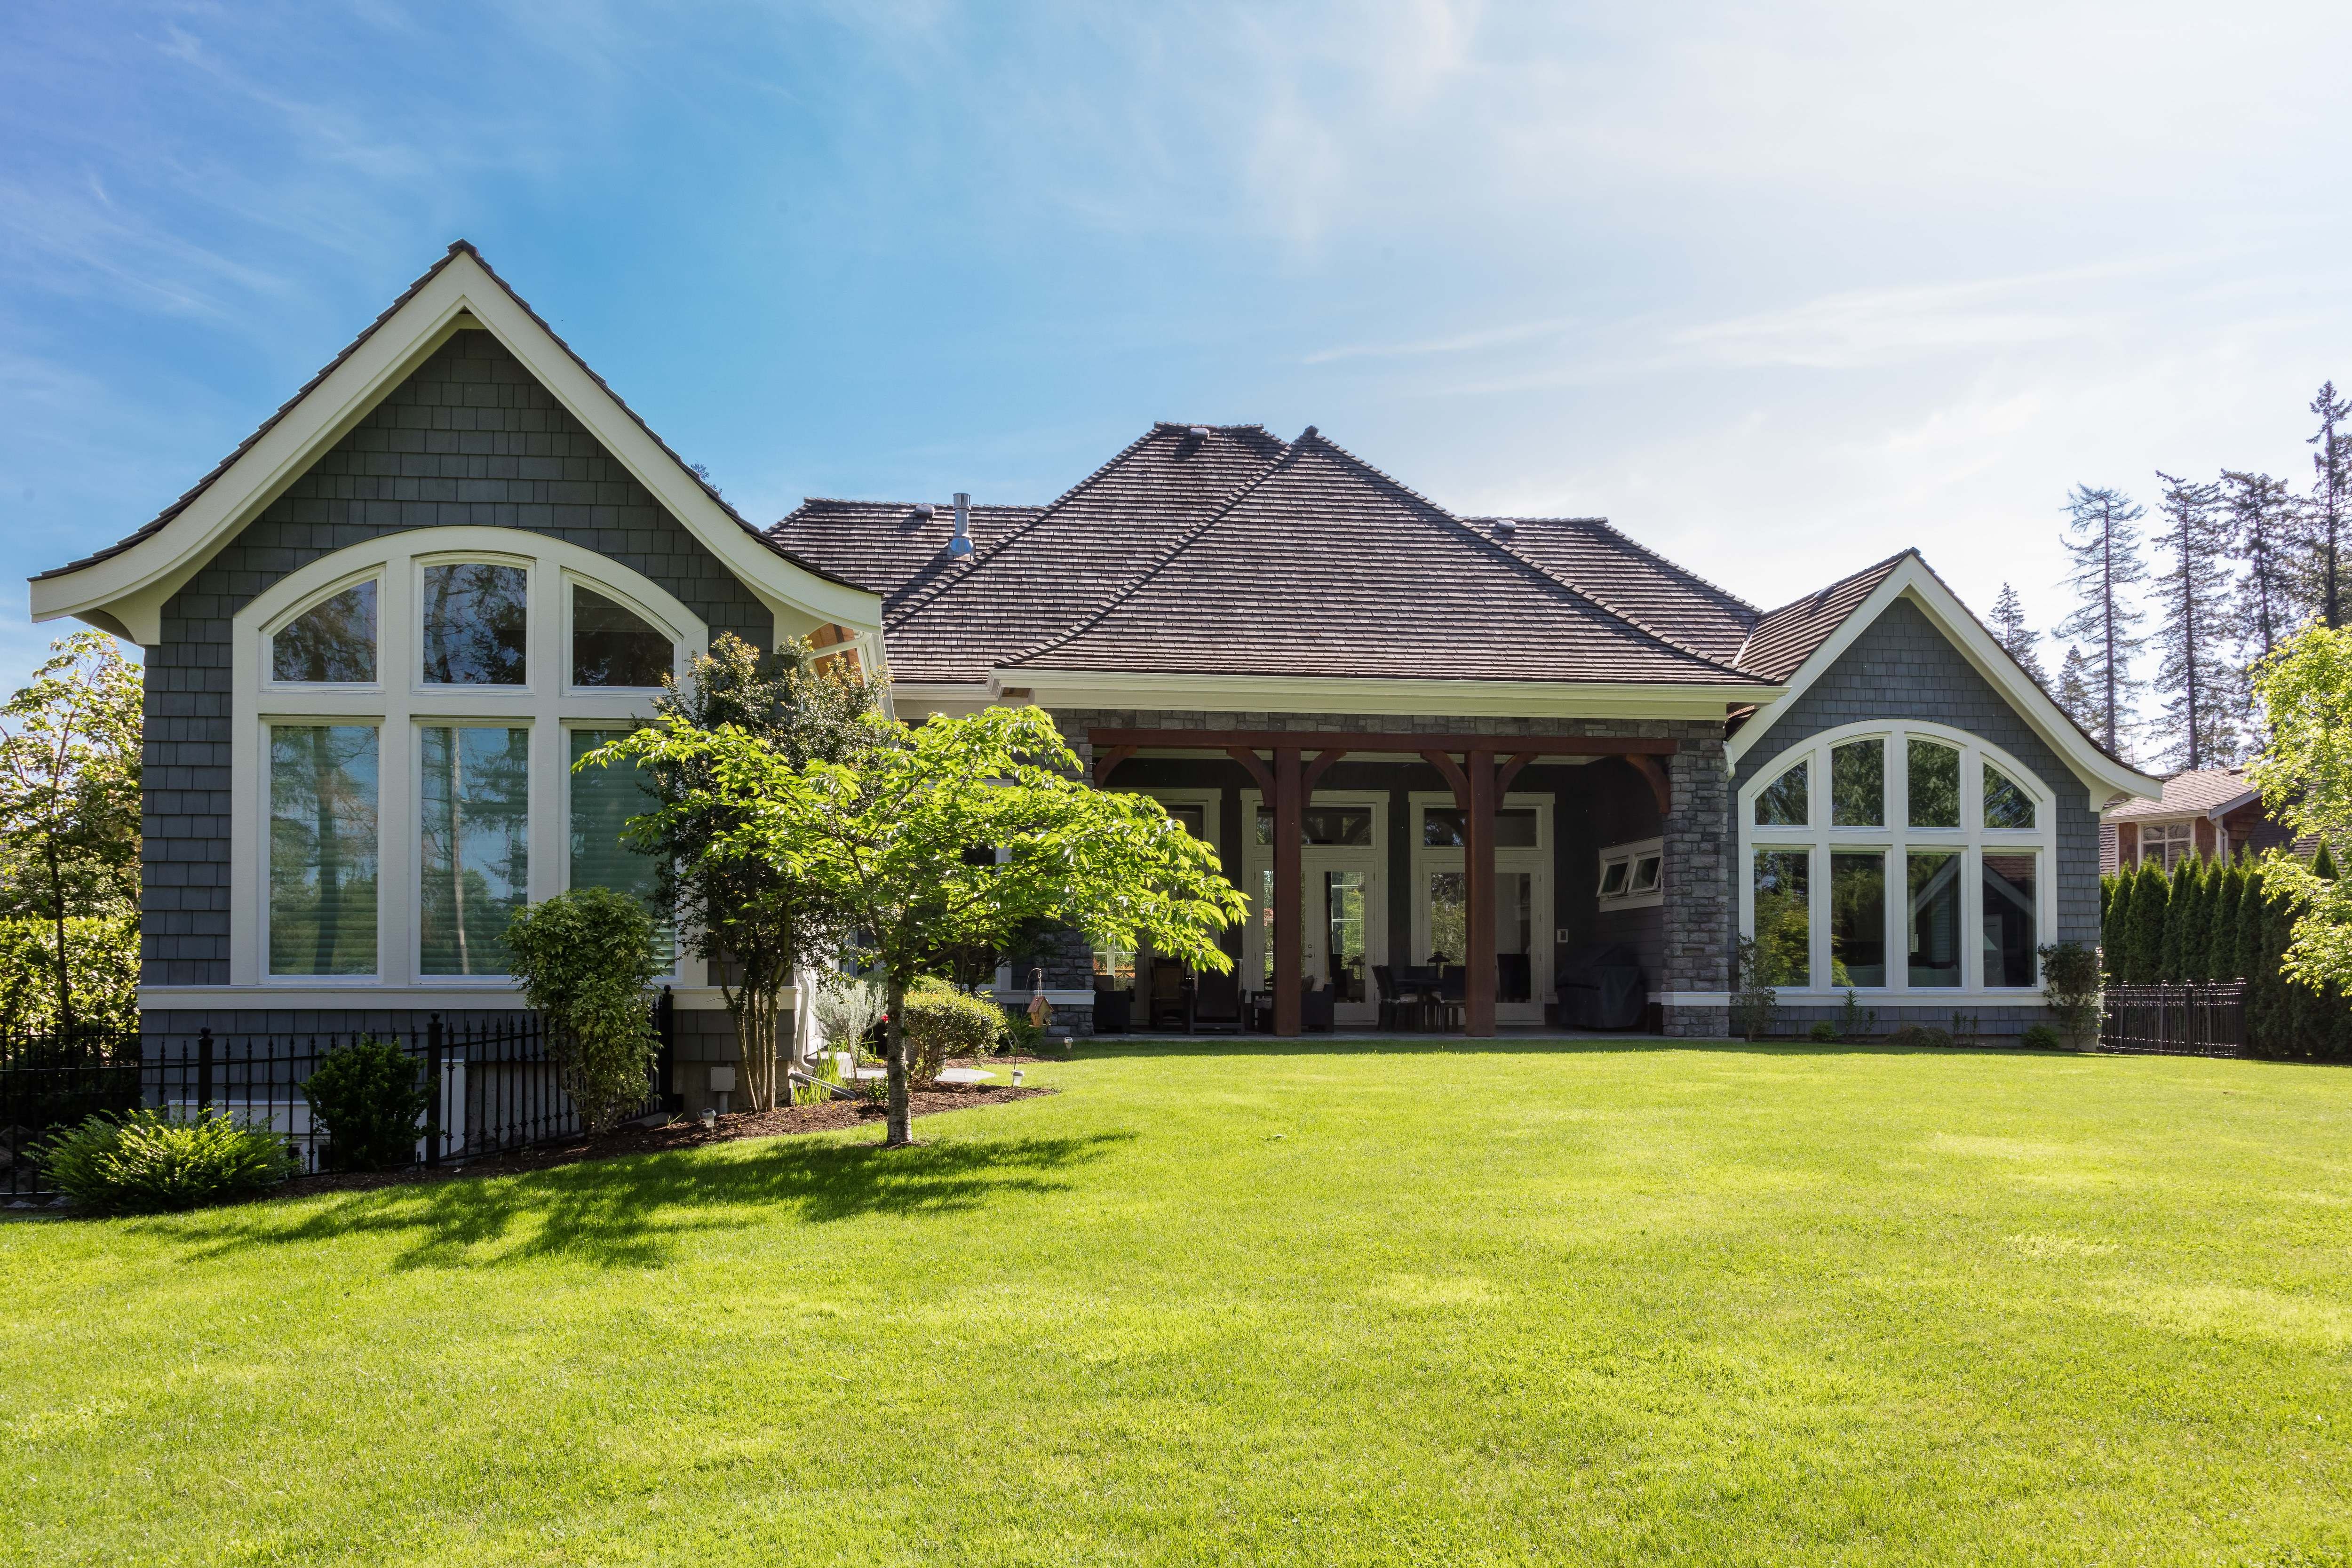 Cedar Grove Roofing Supply Surrey Bc 12 300 About Roof